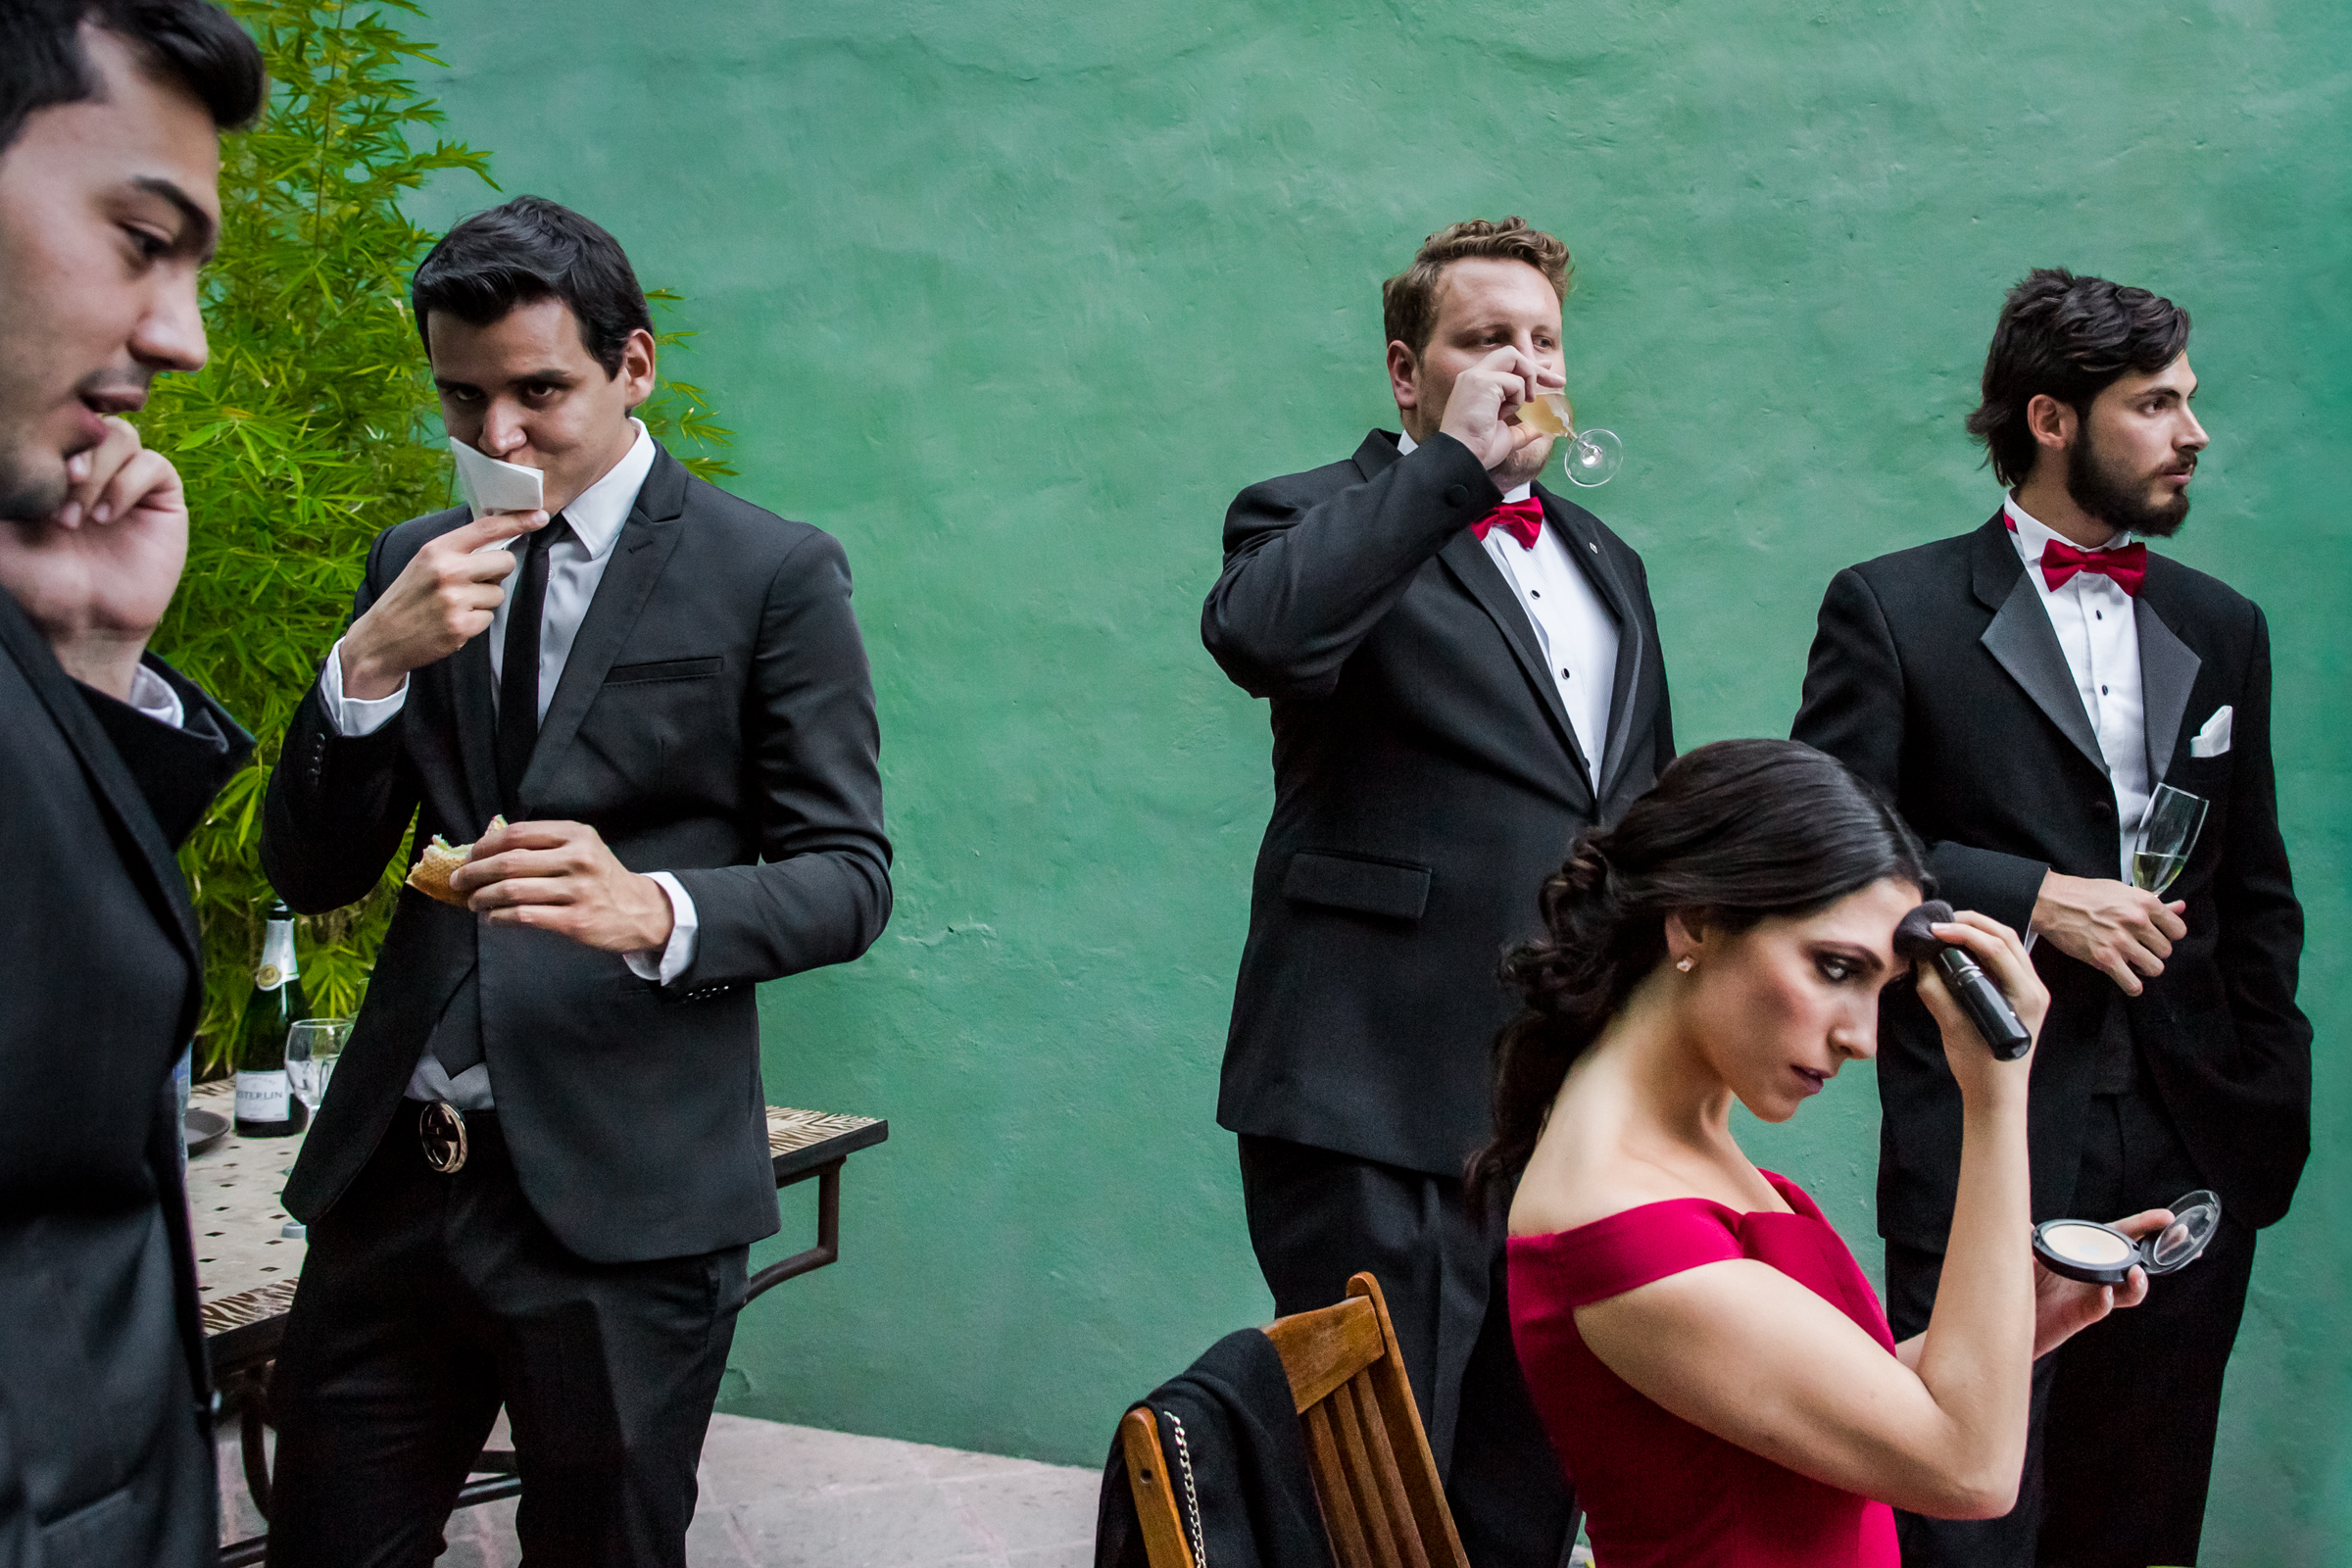 bridal-party-waits-by-the-pool-william-lambelet-photography